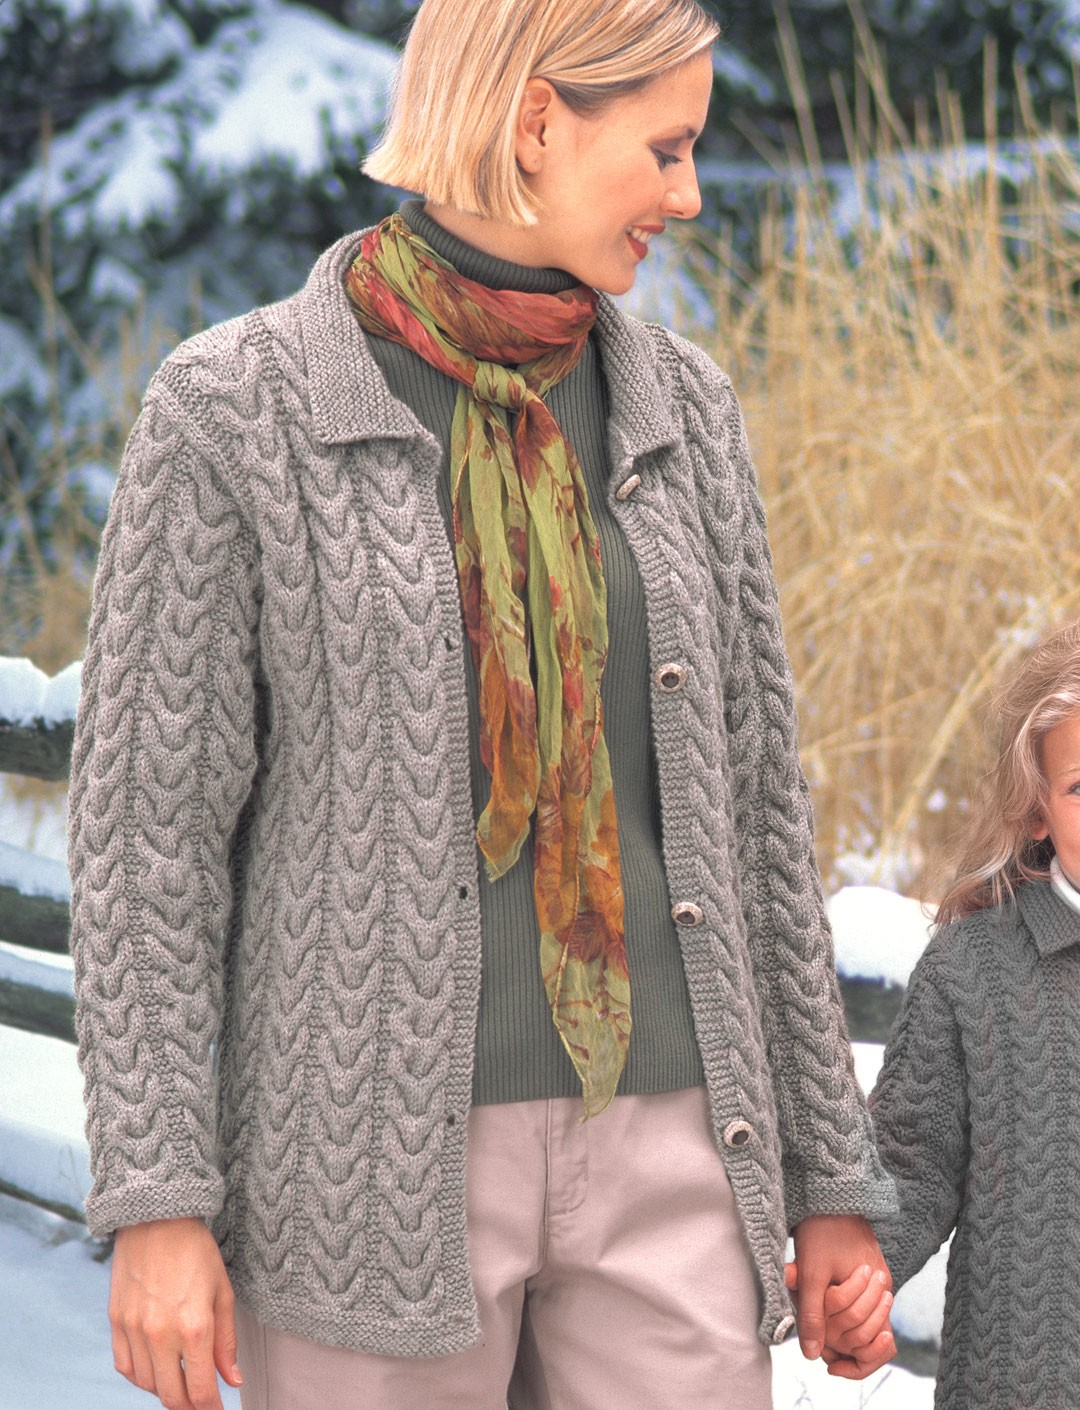 Knitting Patterns Cardigan Ladies : KW - Ladies Cuddly Cables Cardigan (knit) - Patterns Yarnspirations